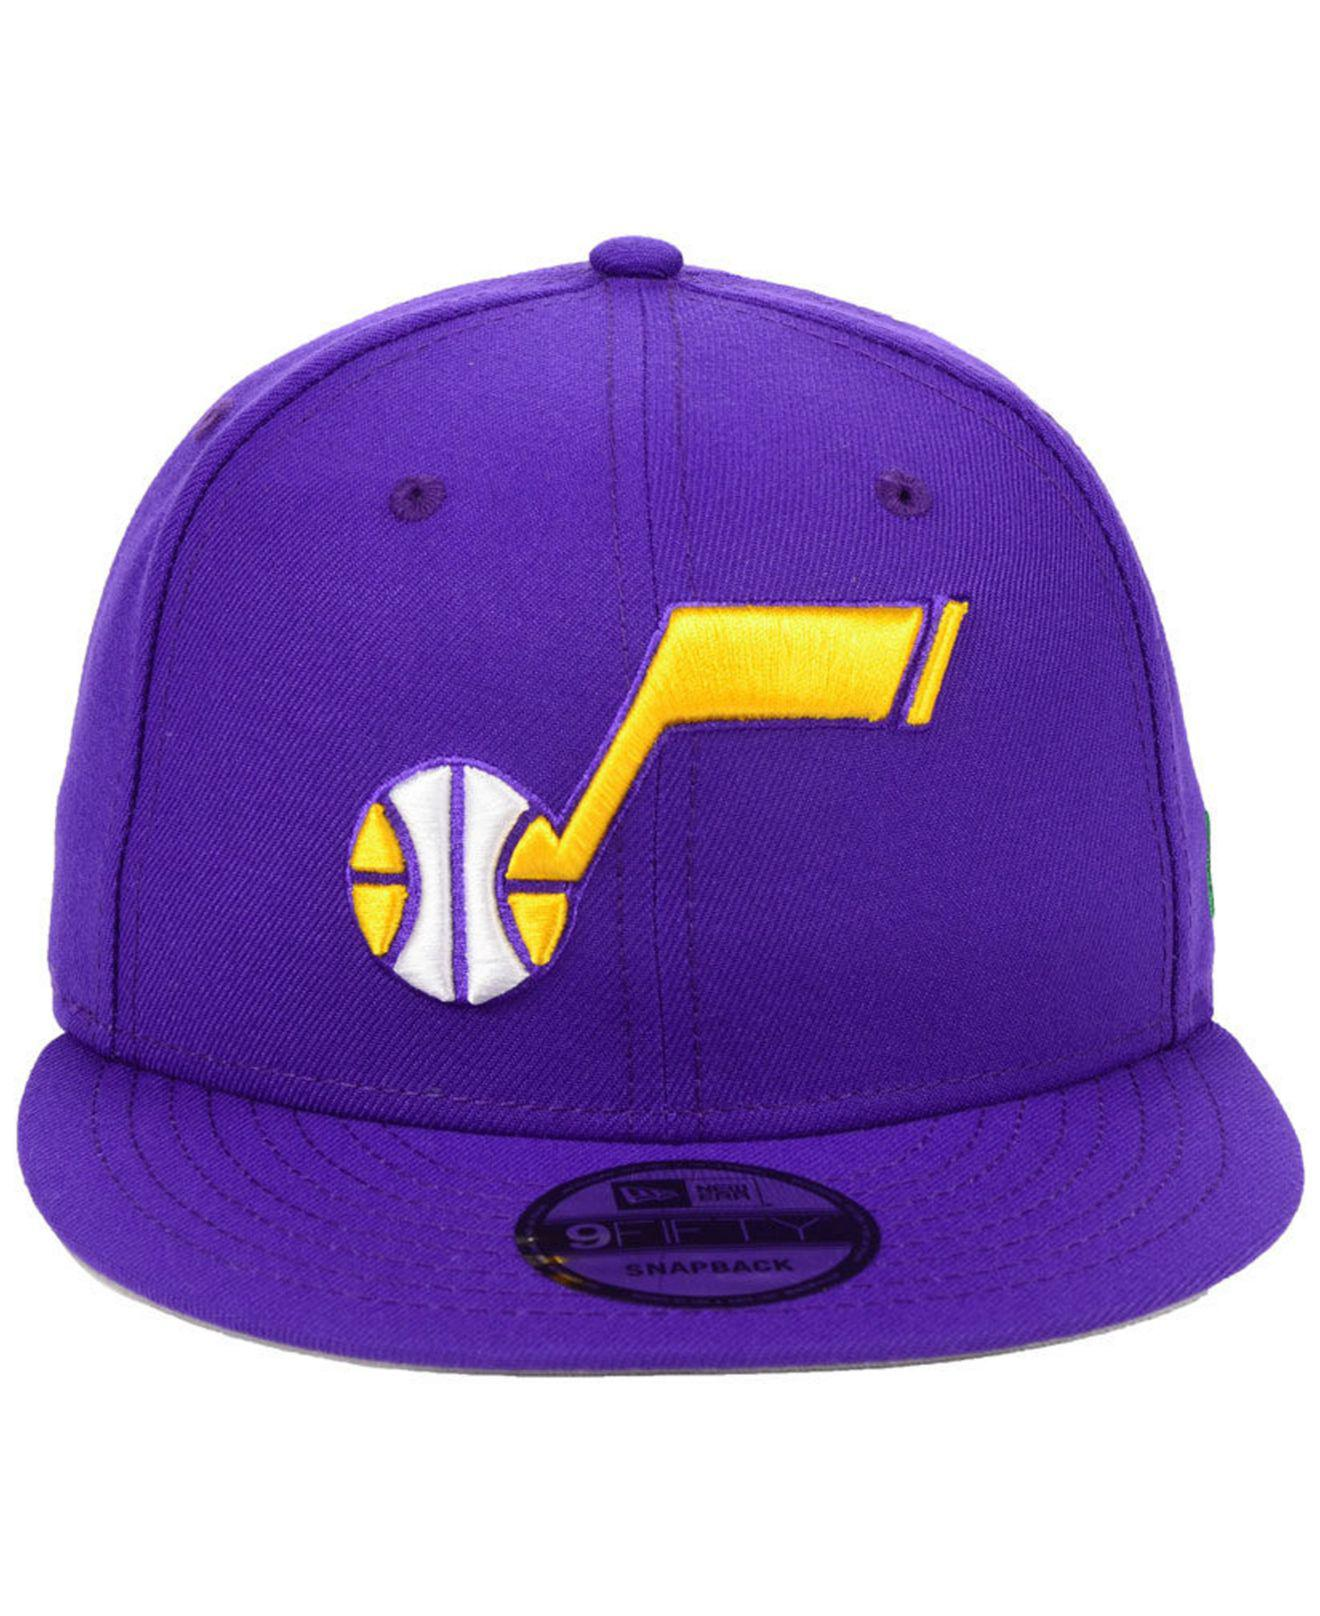 ed3b080ded4ab8 Lyst - KTZ Utah Jazz Hardwood Classic Nights Pin 9fifty Snapback Cap in  Purple for Men